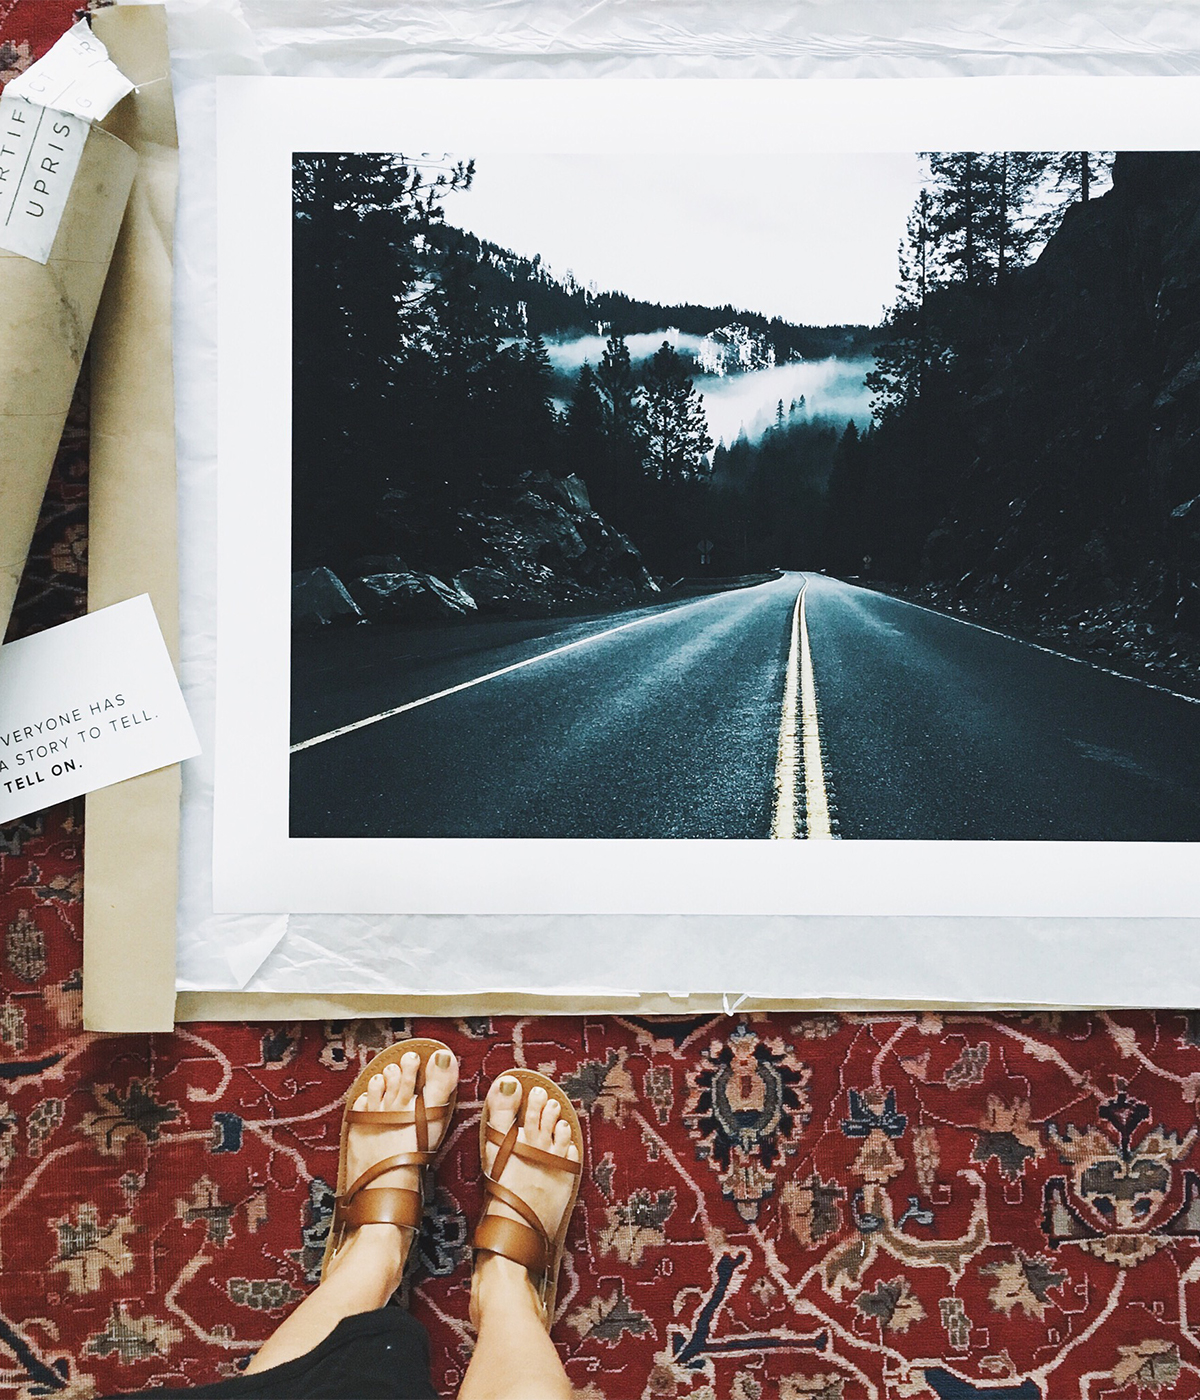 Large Format Print still in packaging unrolled at woman's feet